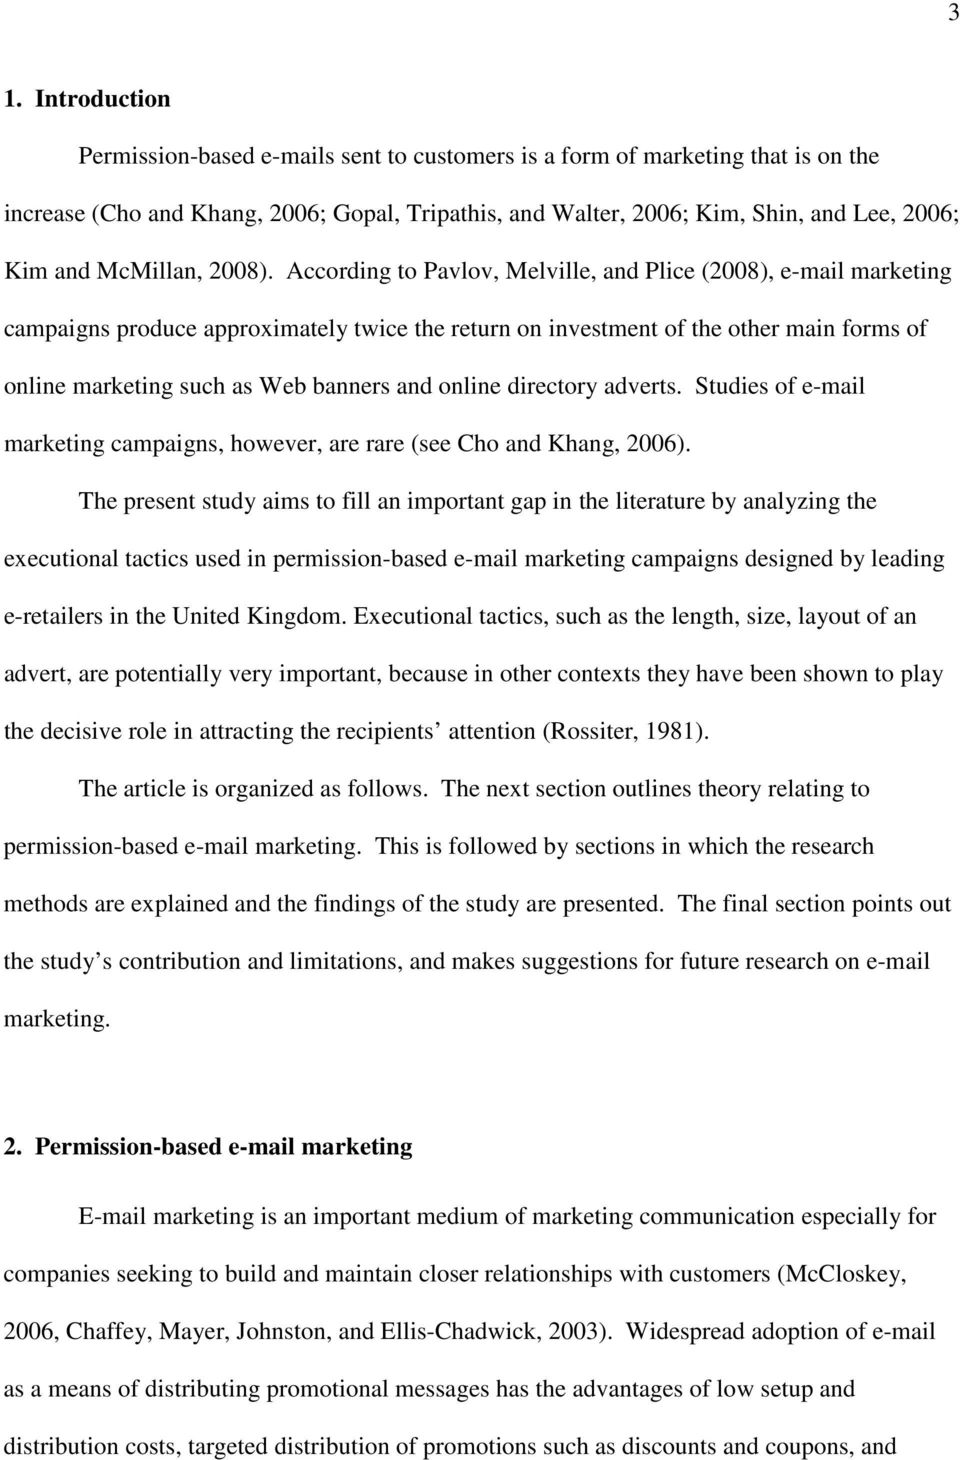 According to Pavlov, Melville, and Plice (2008), e-mail marketing campaigns produce approximately twice the return on investment of the other main forms of online marketing such as Web banners and